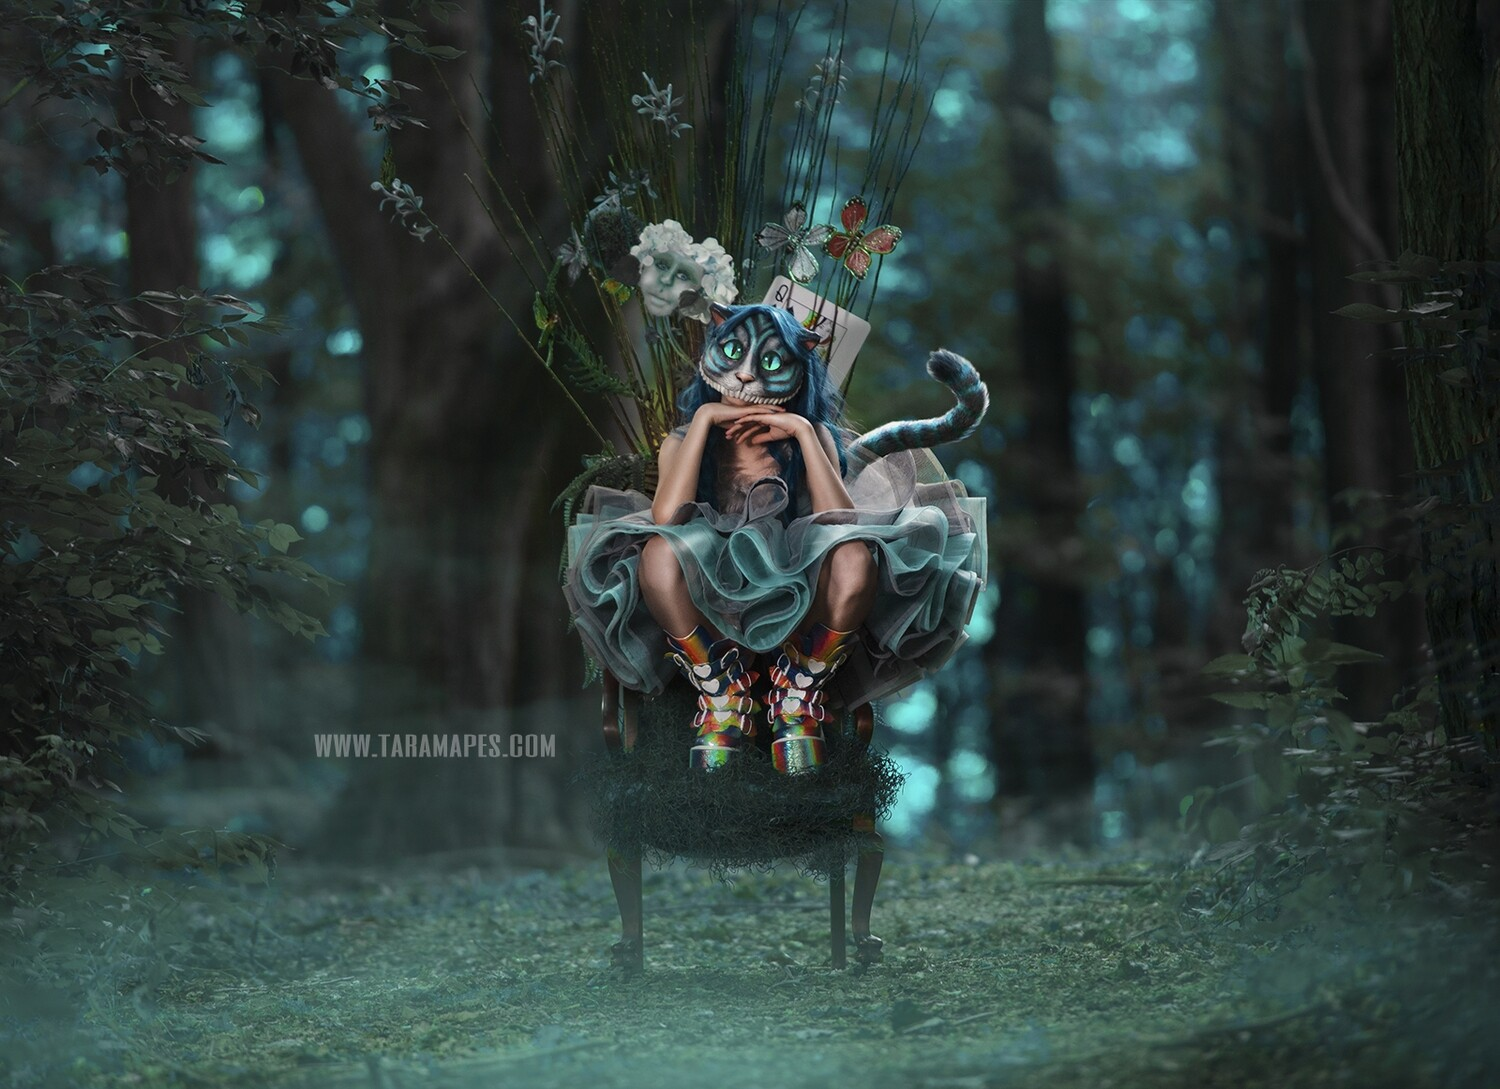 Alice in Wonderland Mossy Chair in Forest Digital Background Backdrop